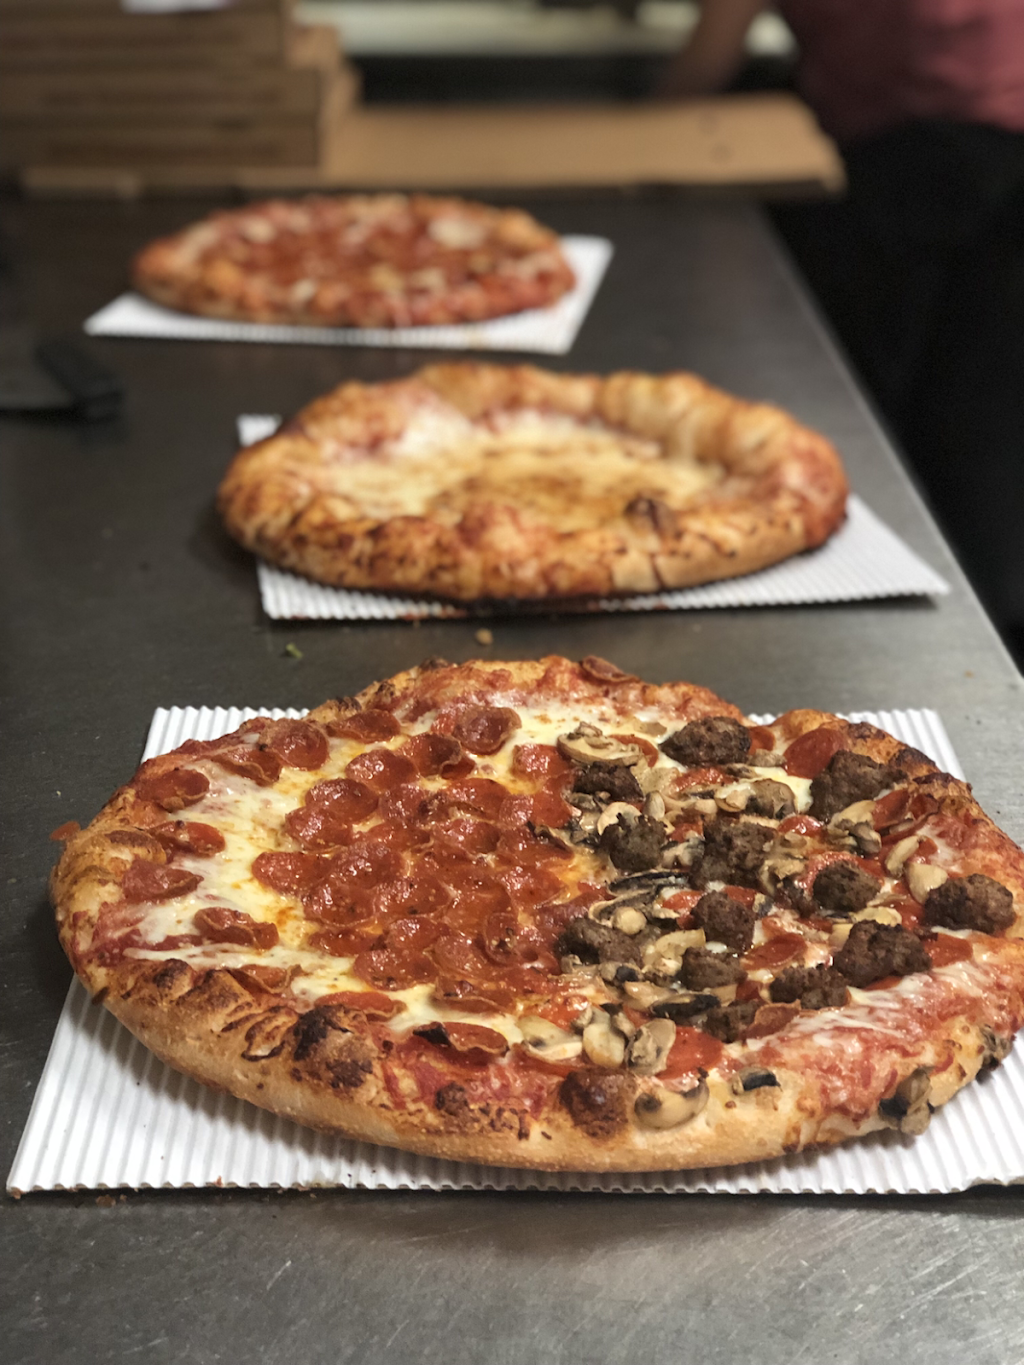 Tarantos Pizzeria - meal delivery  | Photo 5 of 10 | Address: 1282 E Powell Rd, Lewis Center, OH 43035, USA | Phone: (614) 841-2345